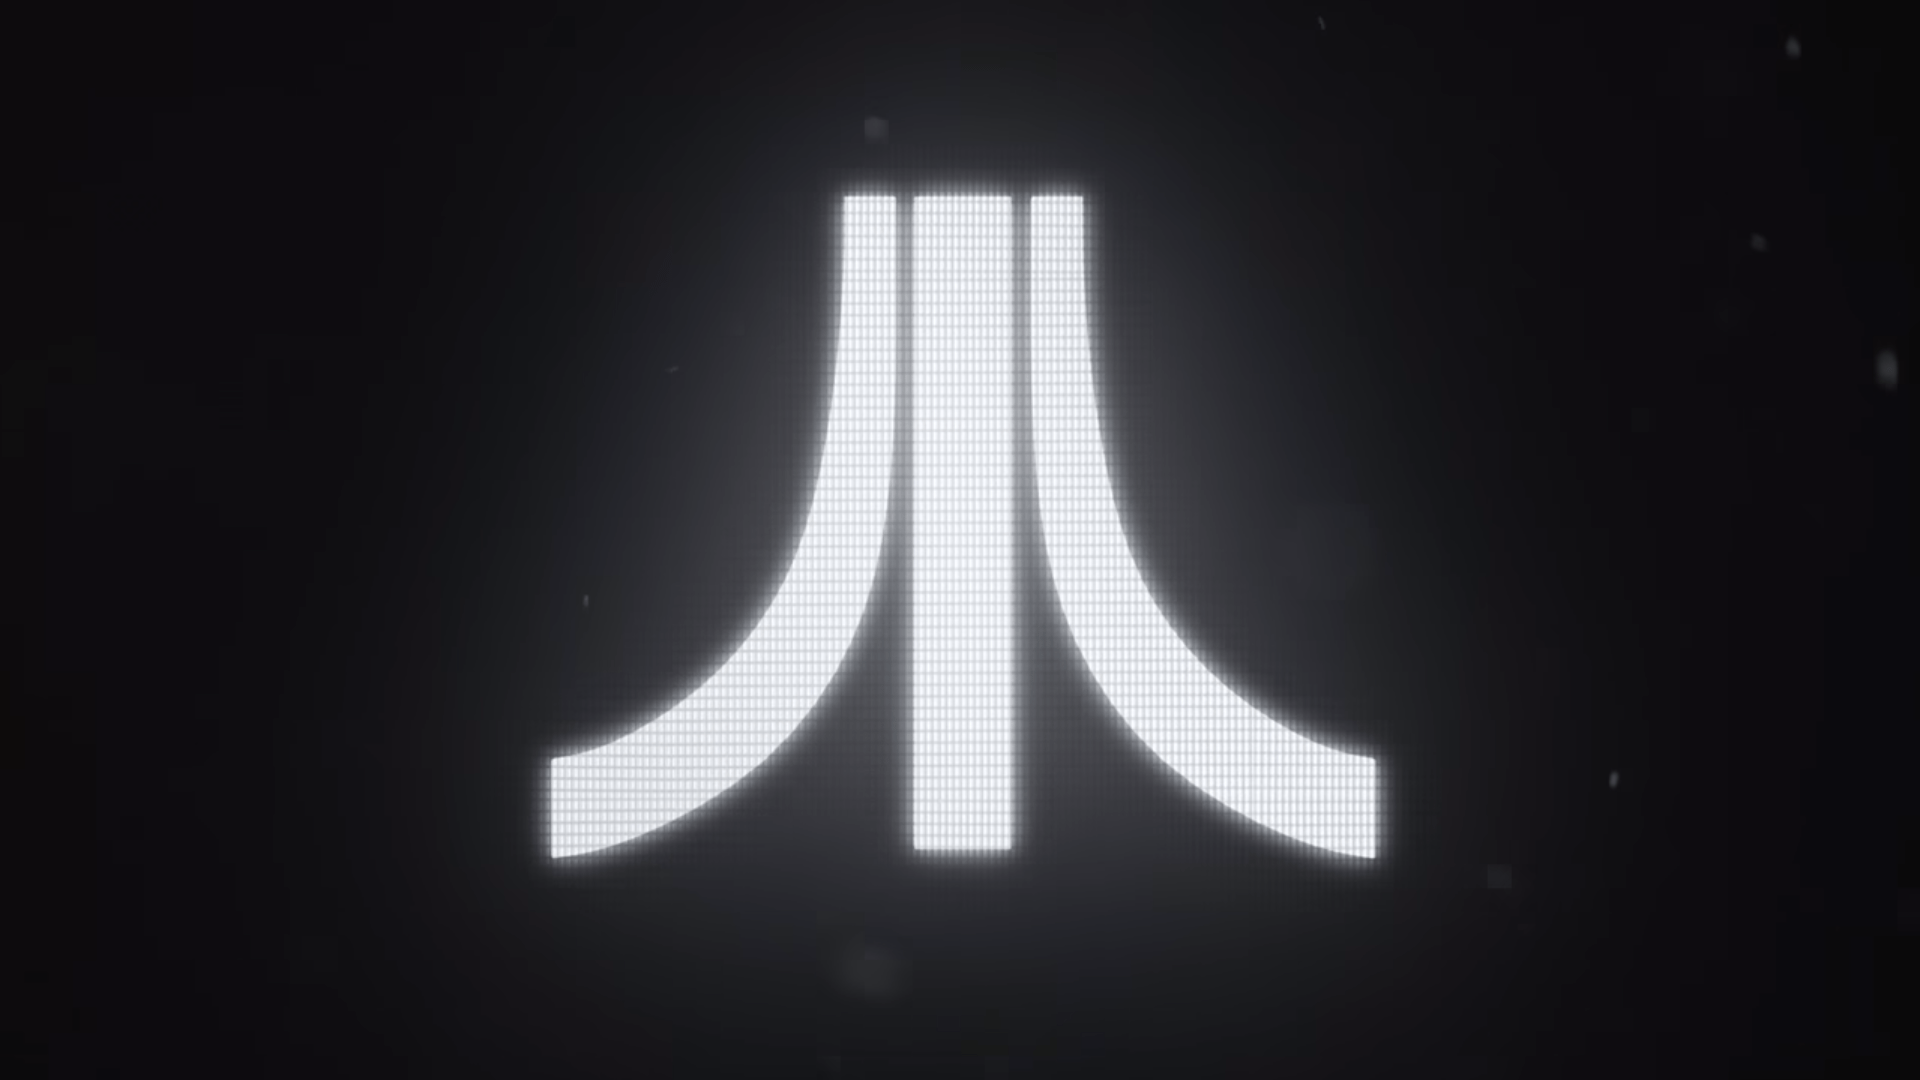 Atari confirms new game console in the works